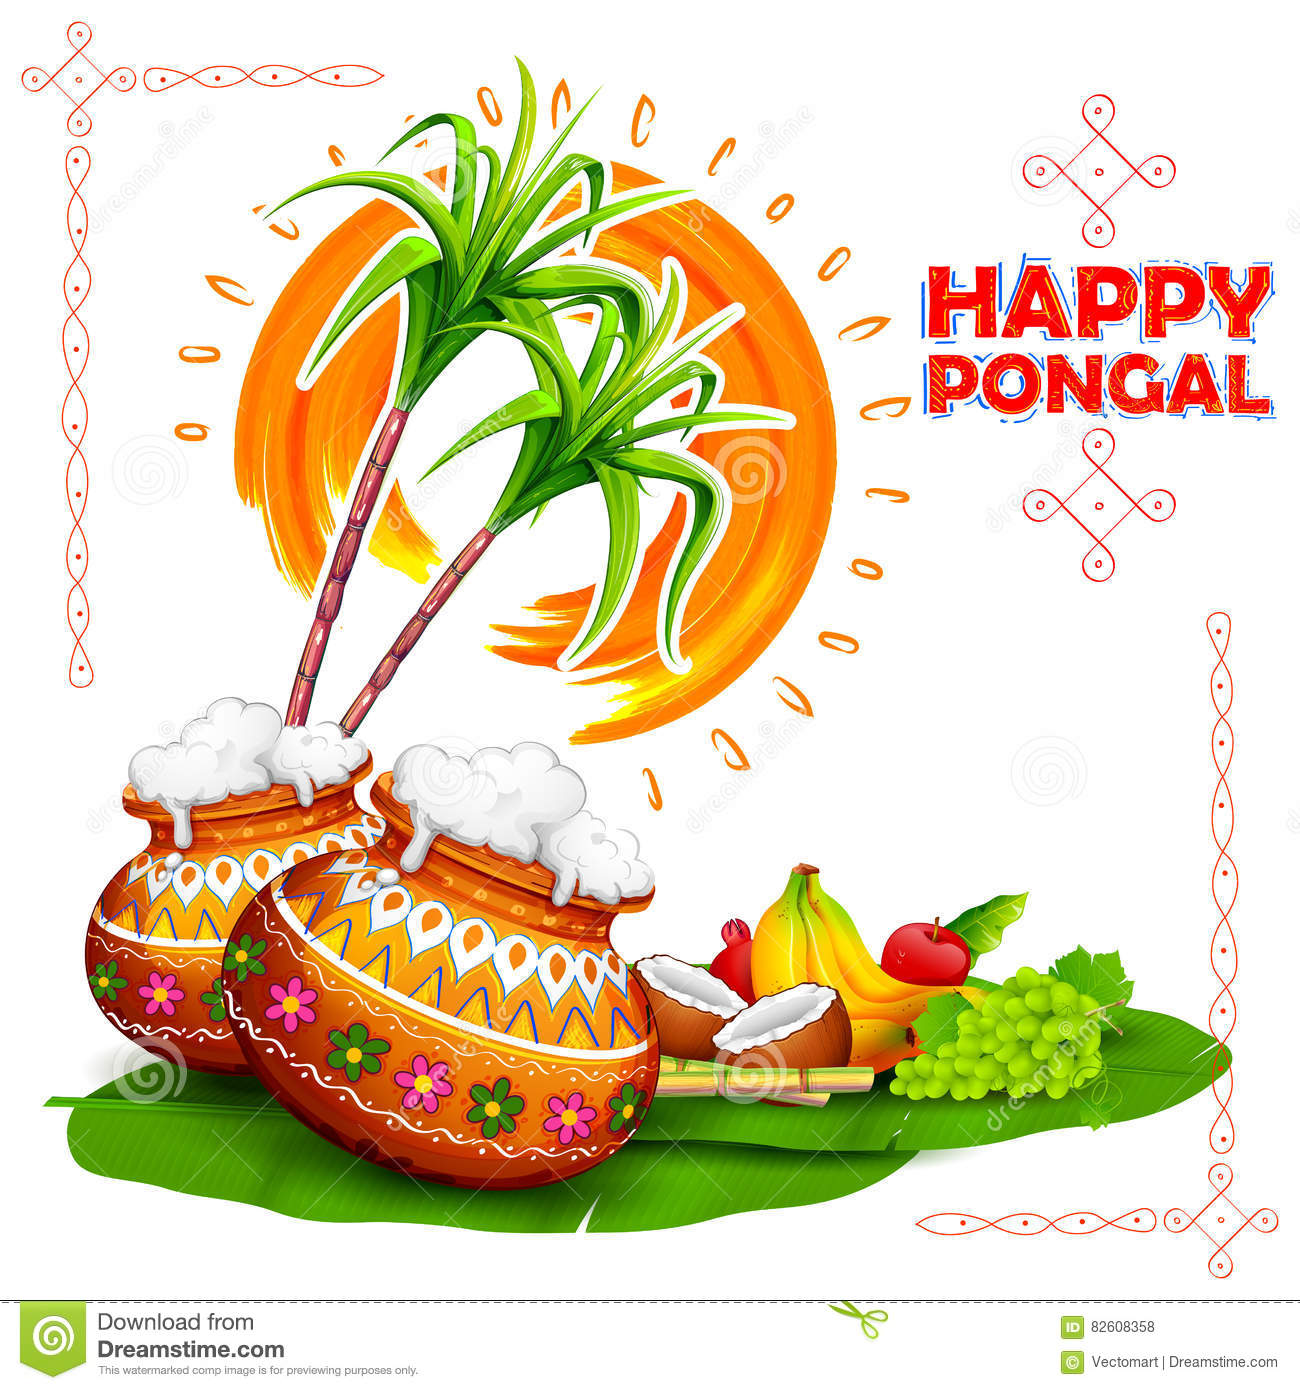 Happy pongal greeting background stock vector illustration of download happy pongal greeting background stock vector illustration of celebration kalash 82608358 m4hsunfo